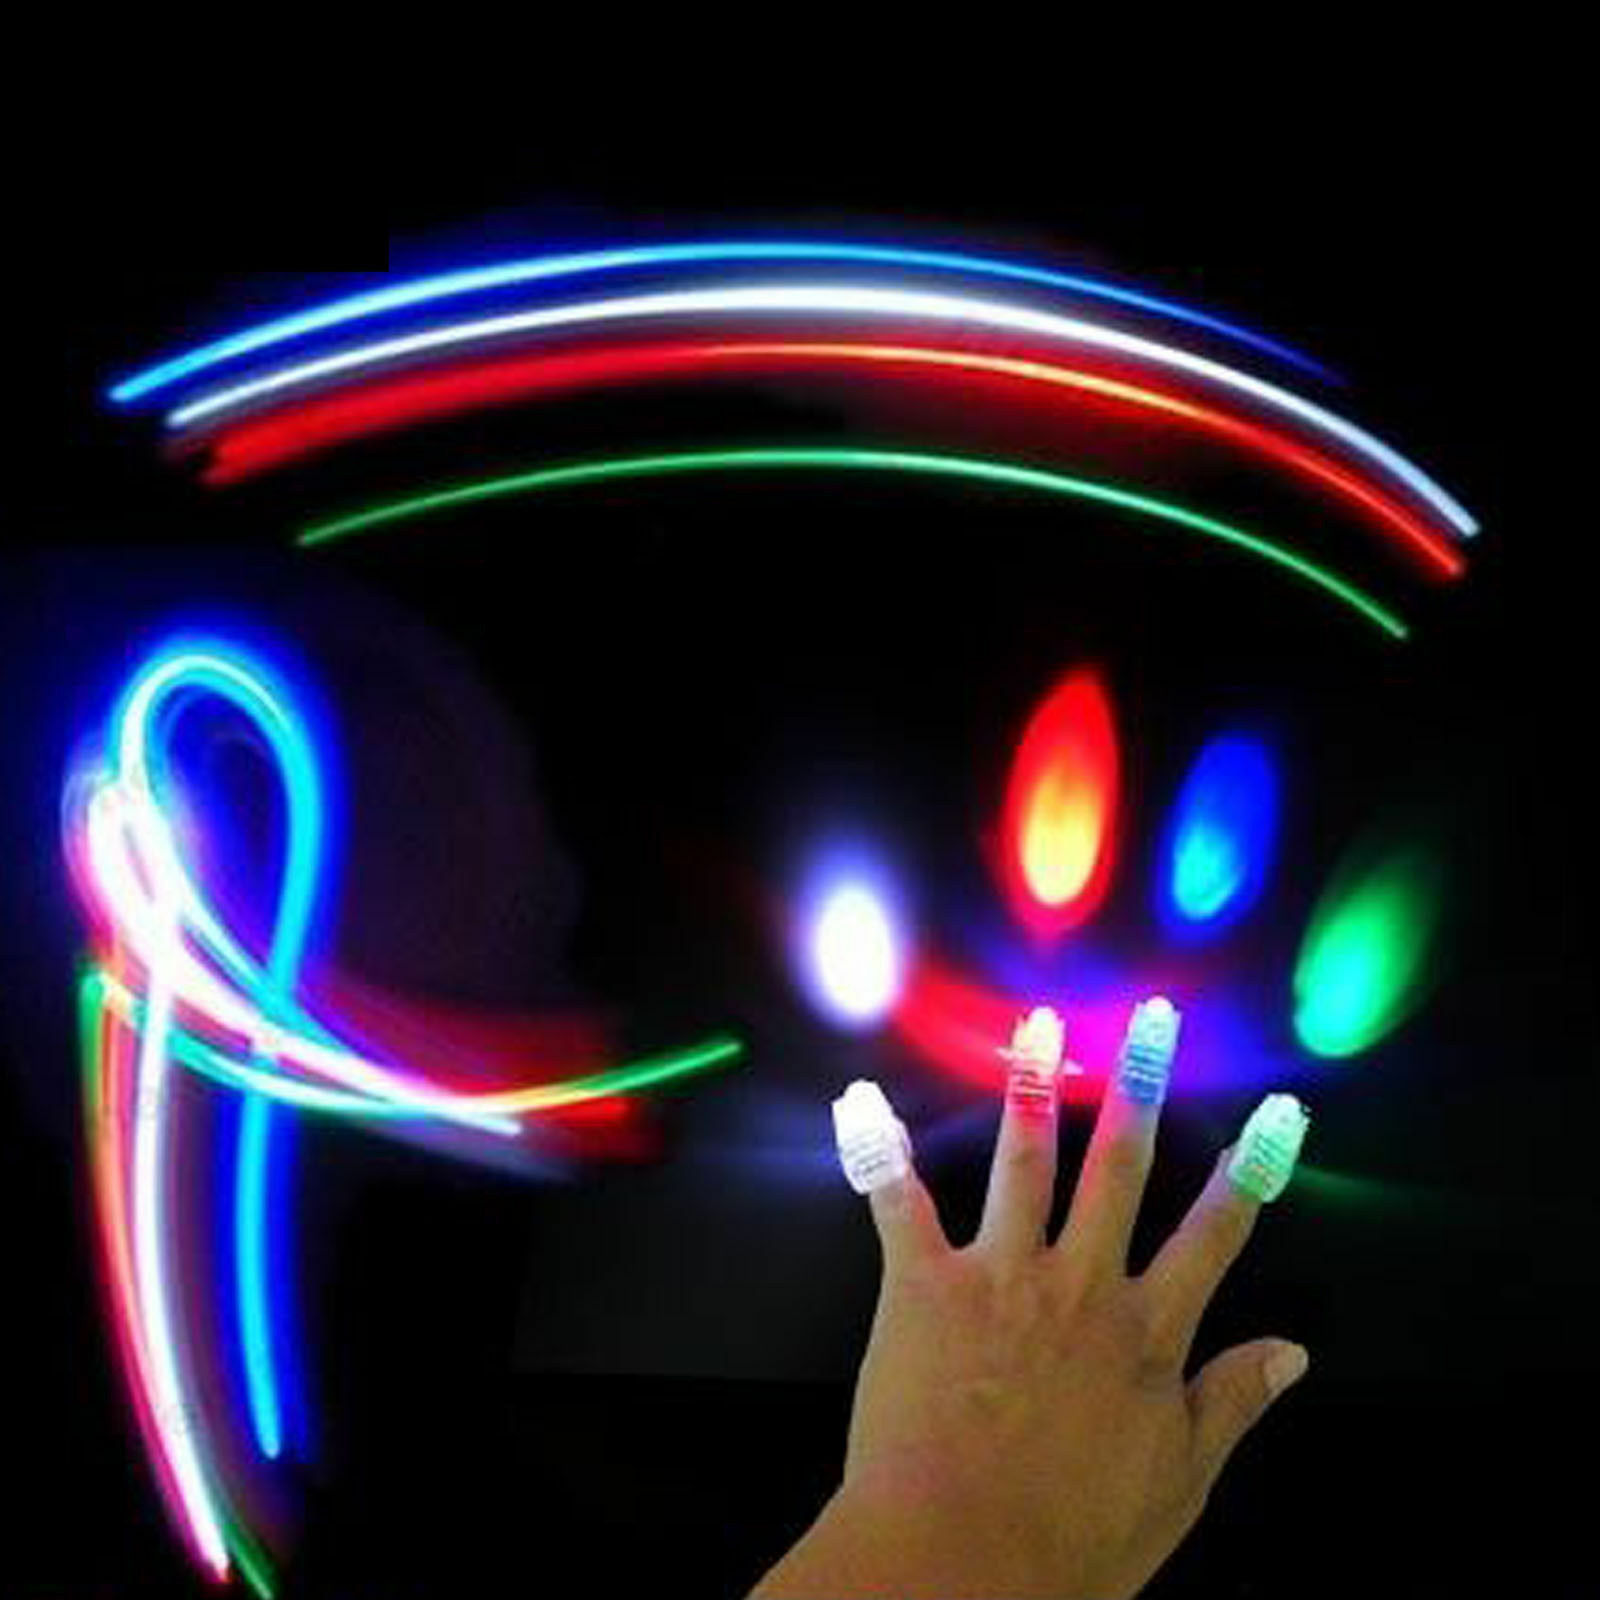 40  SENSORY ROOM LUMINARY HAND PROJECTION COLOUR LIGHTS  ADHT AUTISM RELAXATION